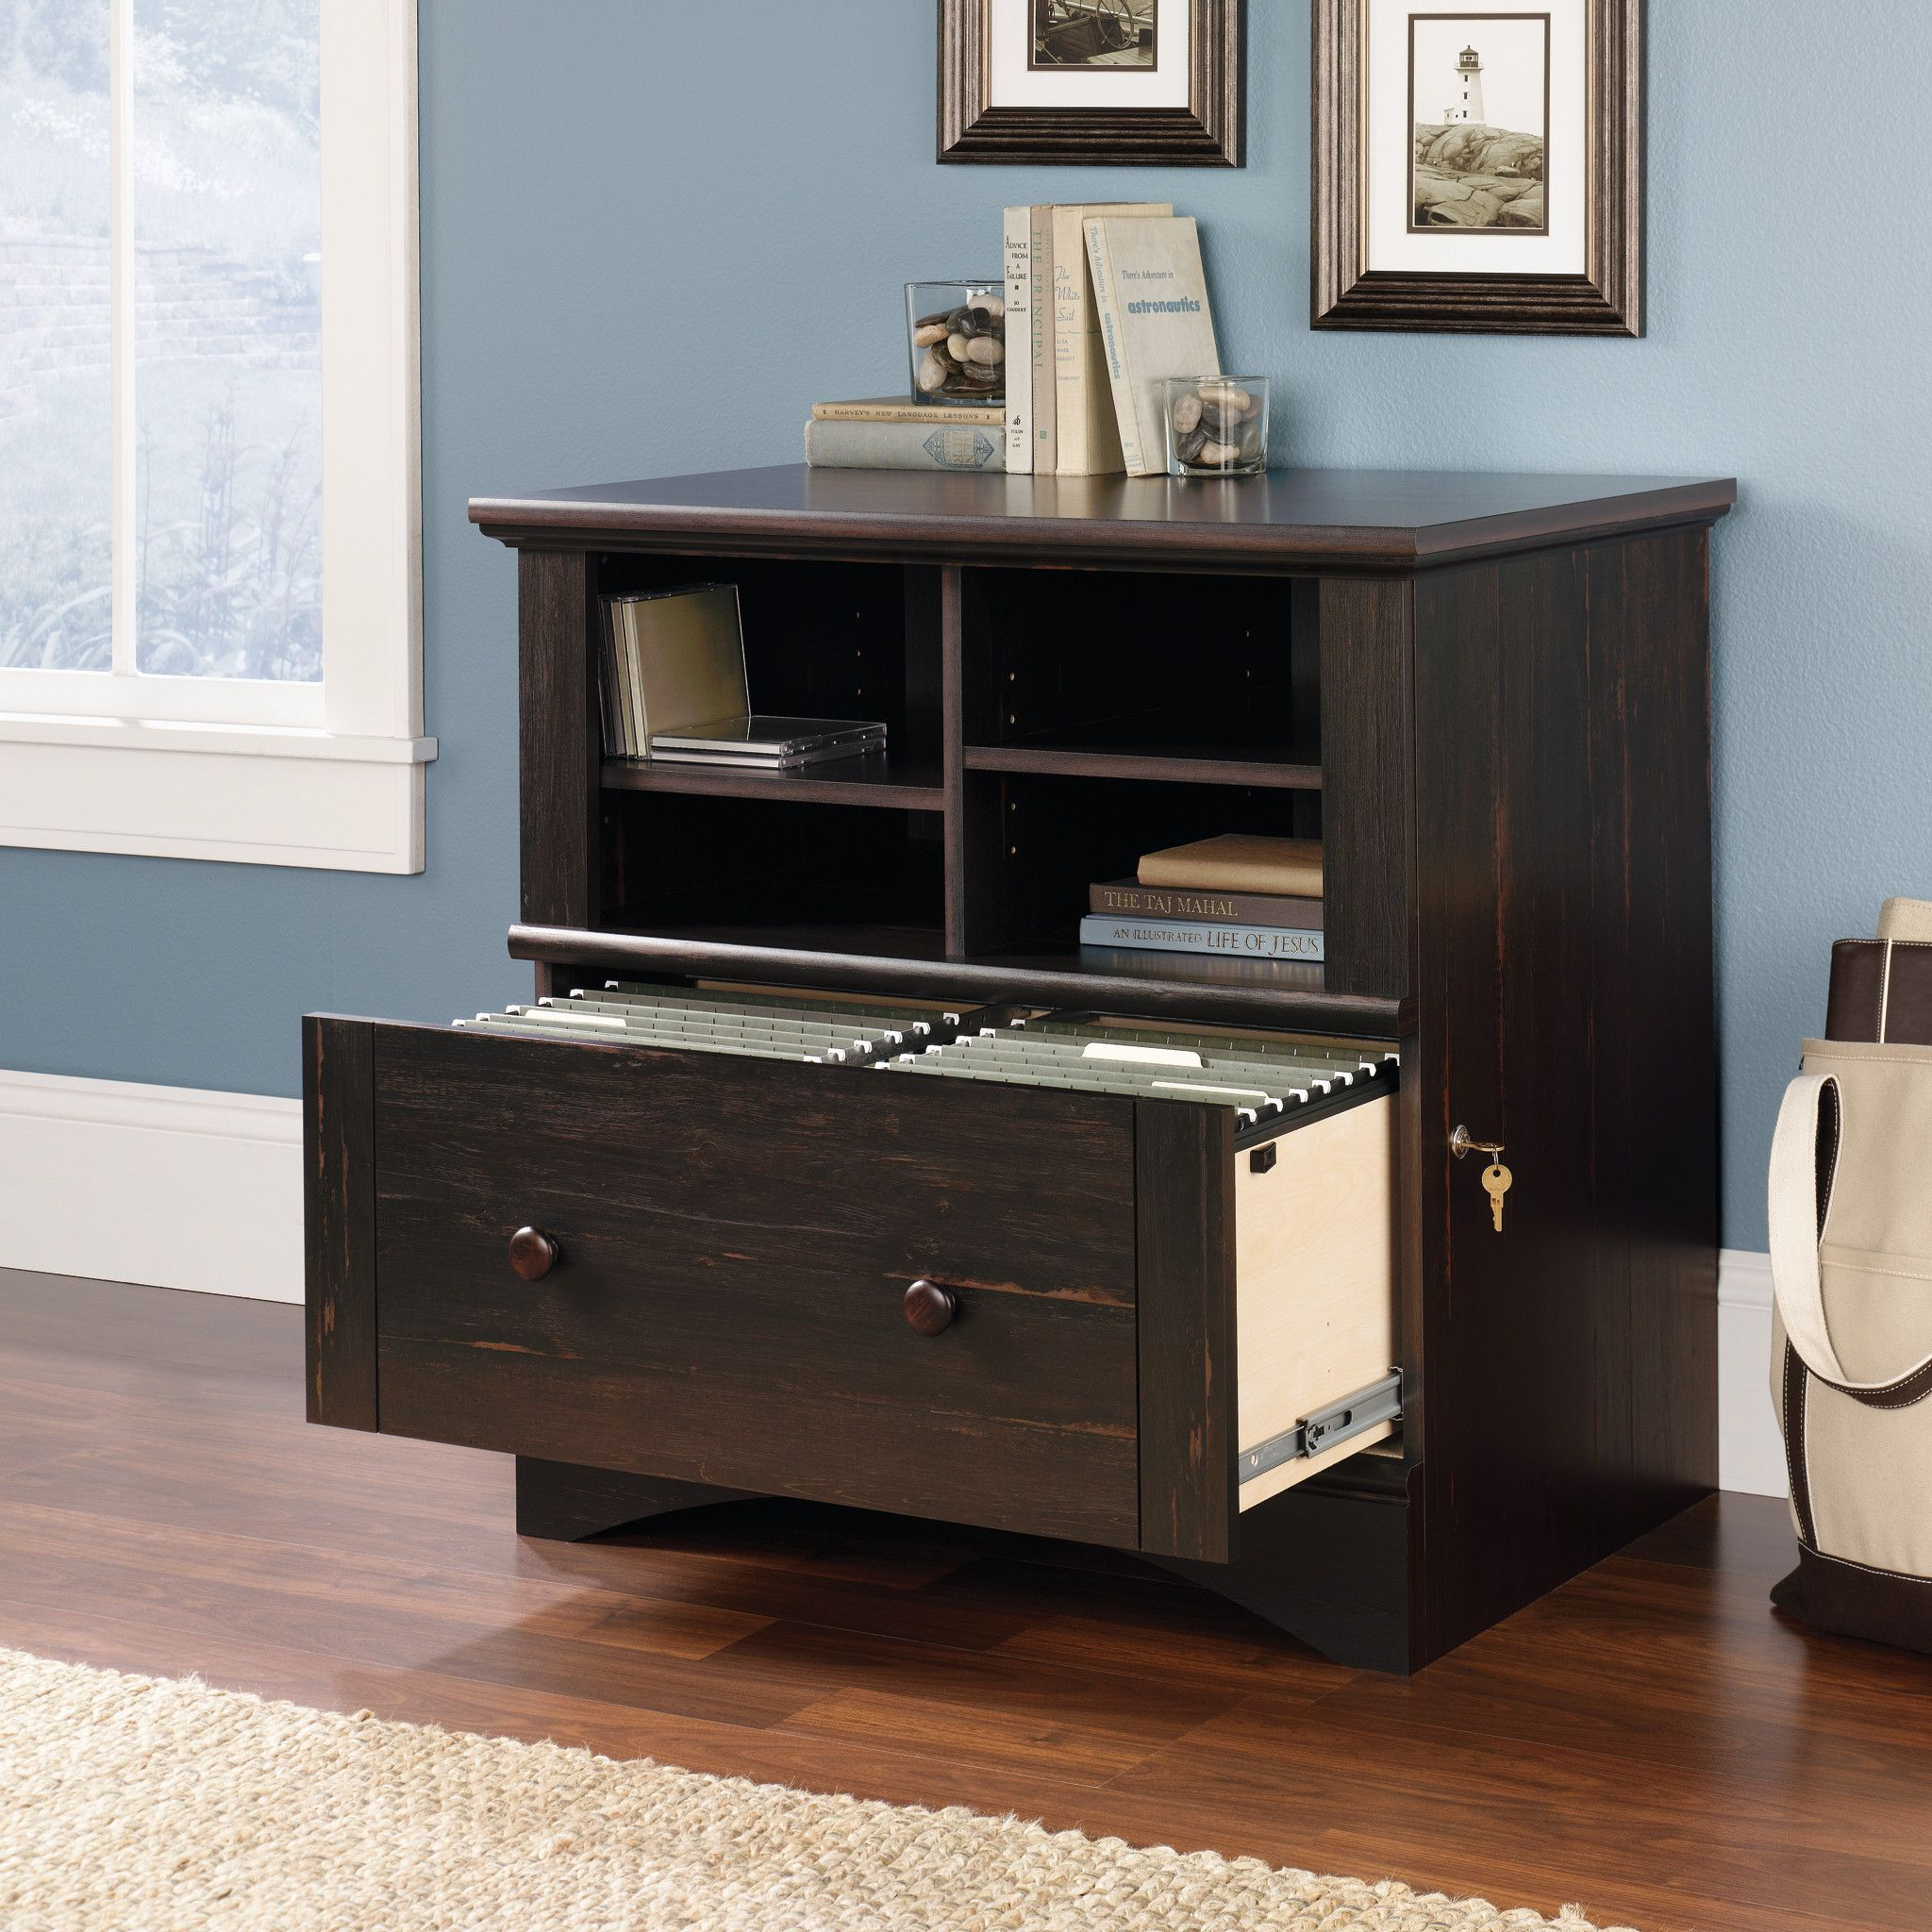 Pinellas 1 Drawer Lateral Filing Cabinet In 2020 Filing Cabinet Cabinet Organizing Your Home